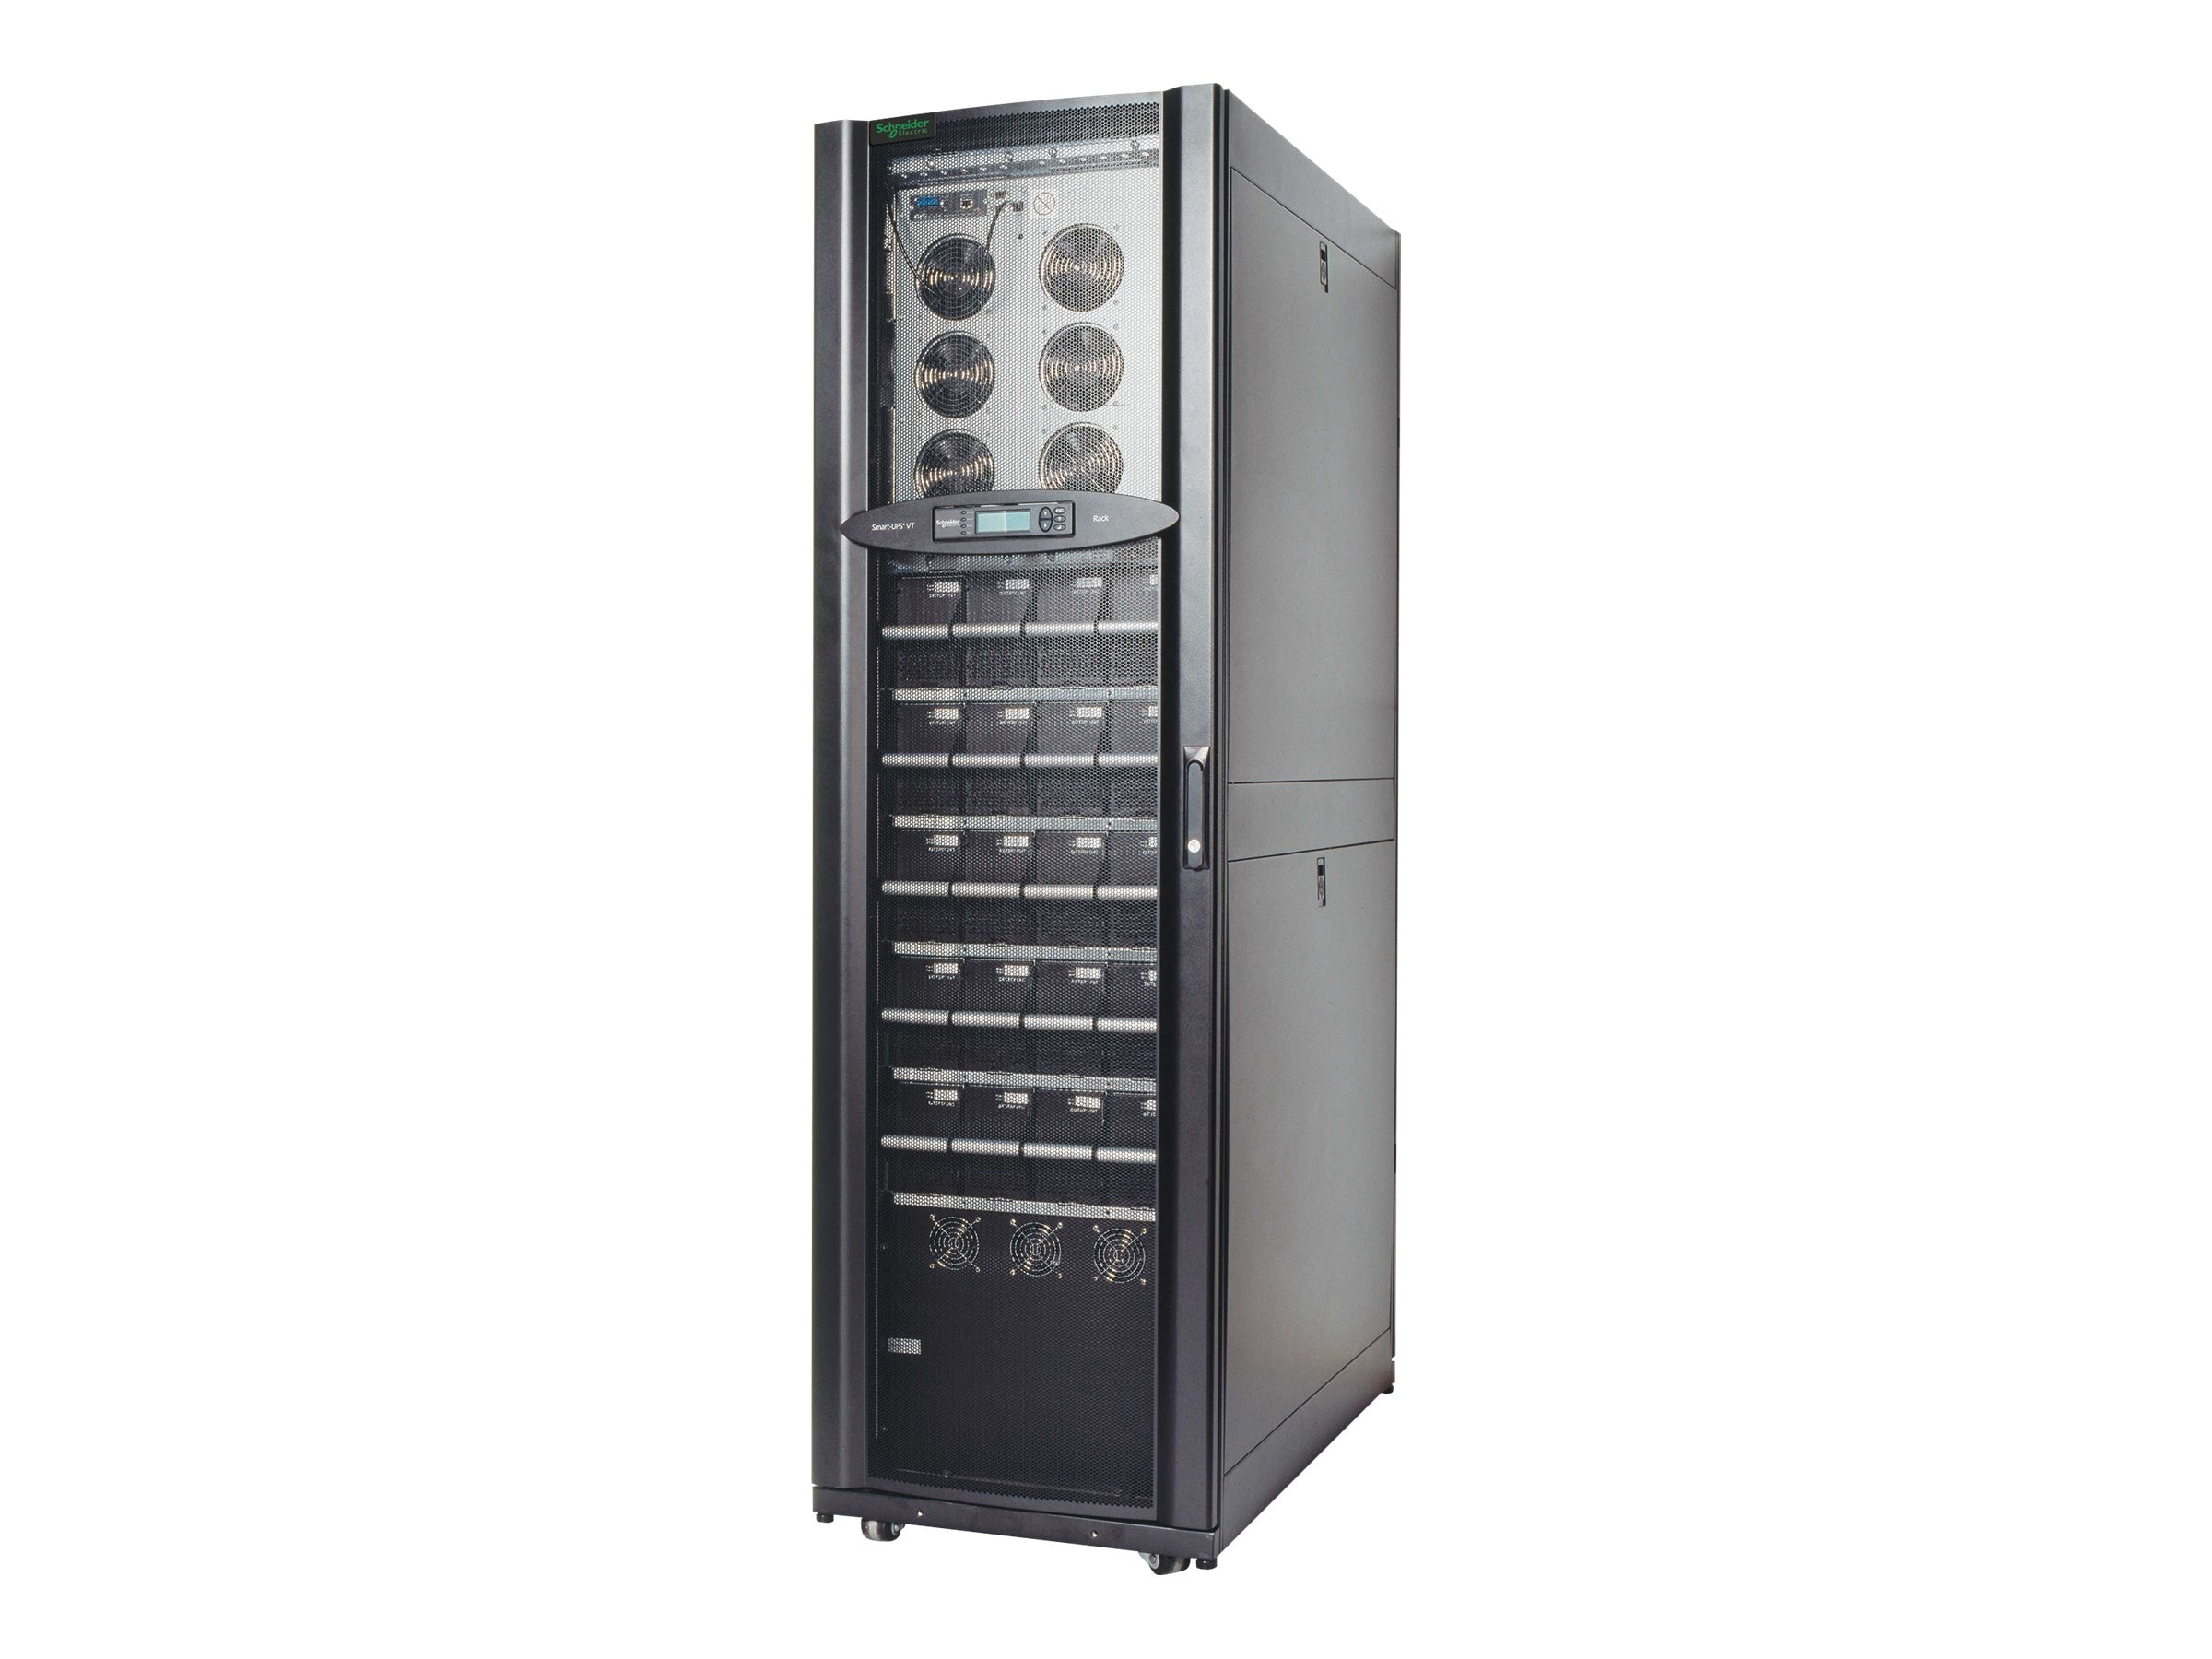 APC Smart-UPS VT 20kVA 480V In, 208V Out, Rack Mounted, (5) Battery Modules, PDU, Startup, SUVTR20KG5B5S, 16657867, Battery Backup/UPS